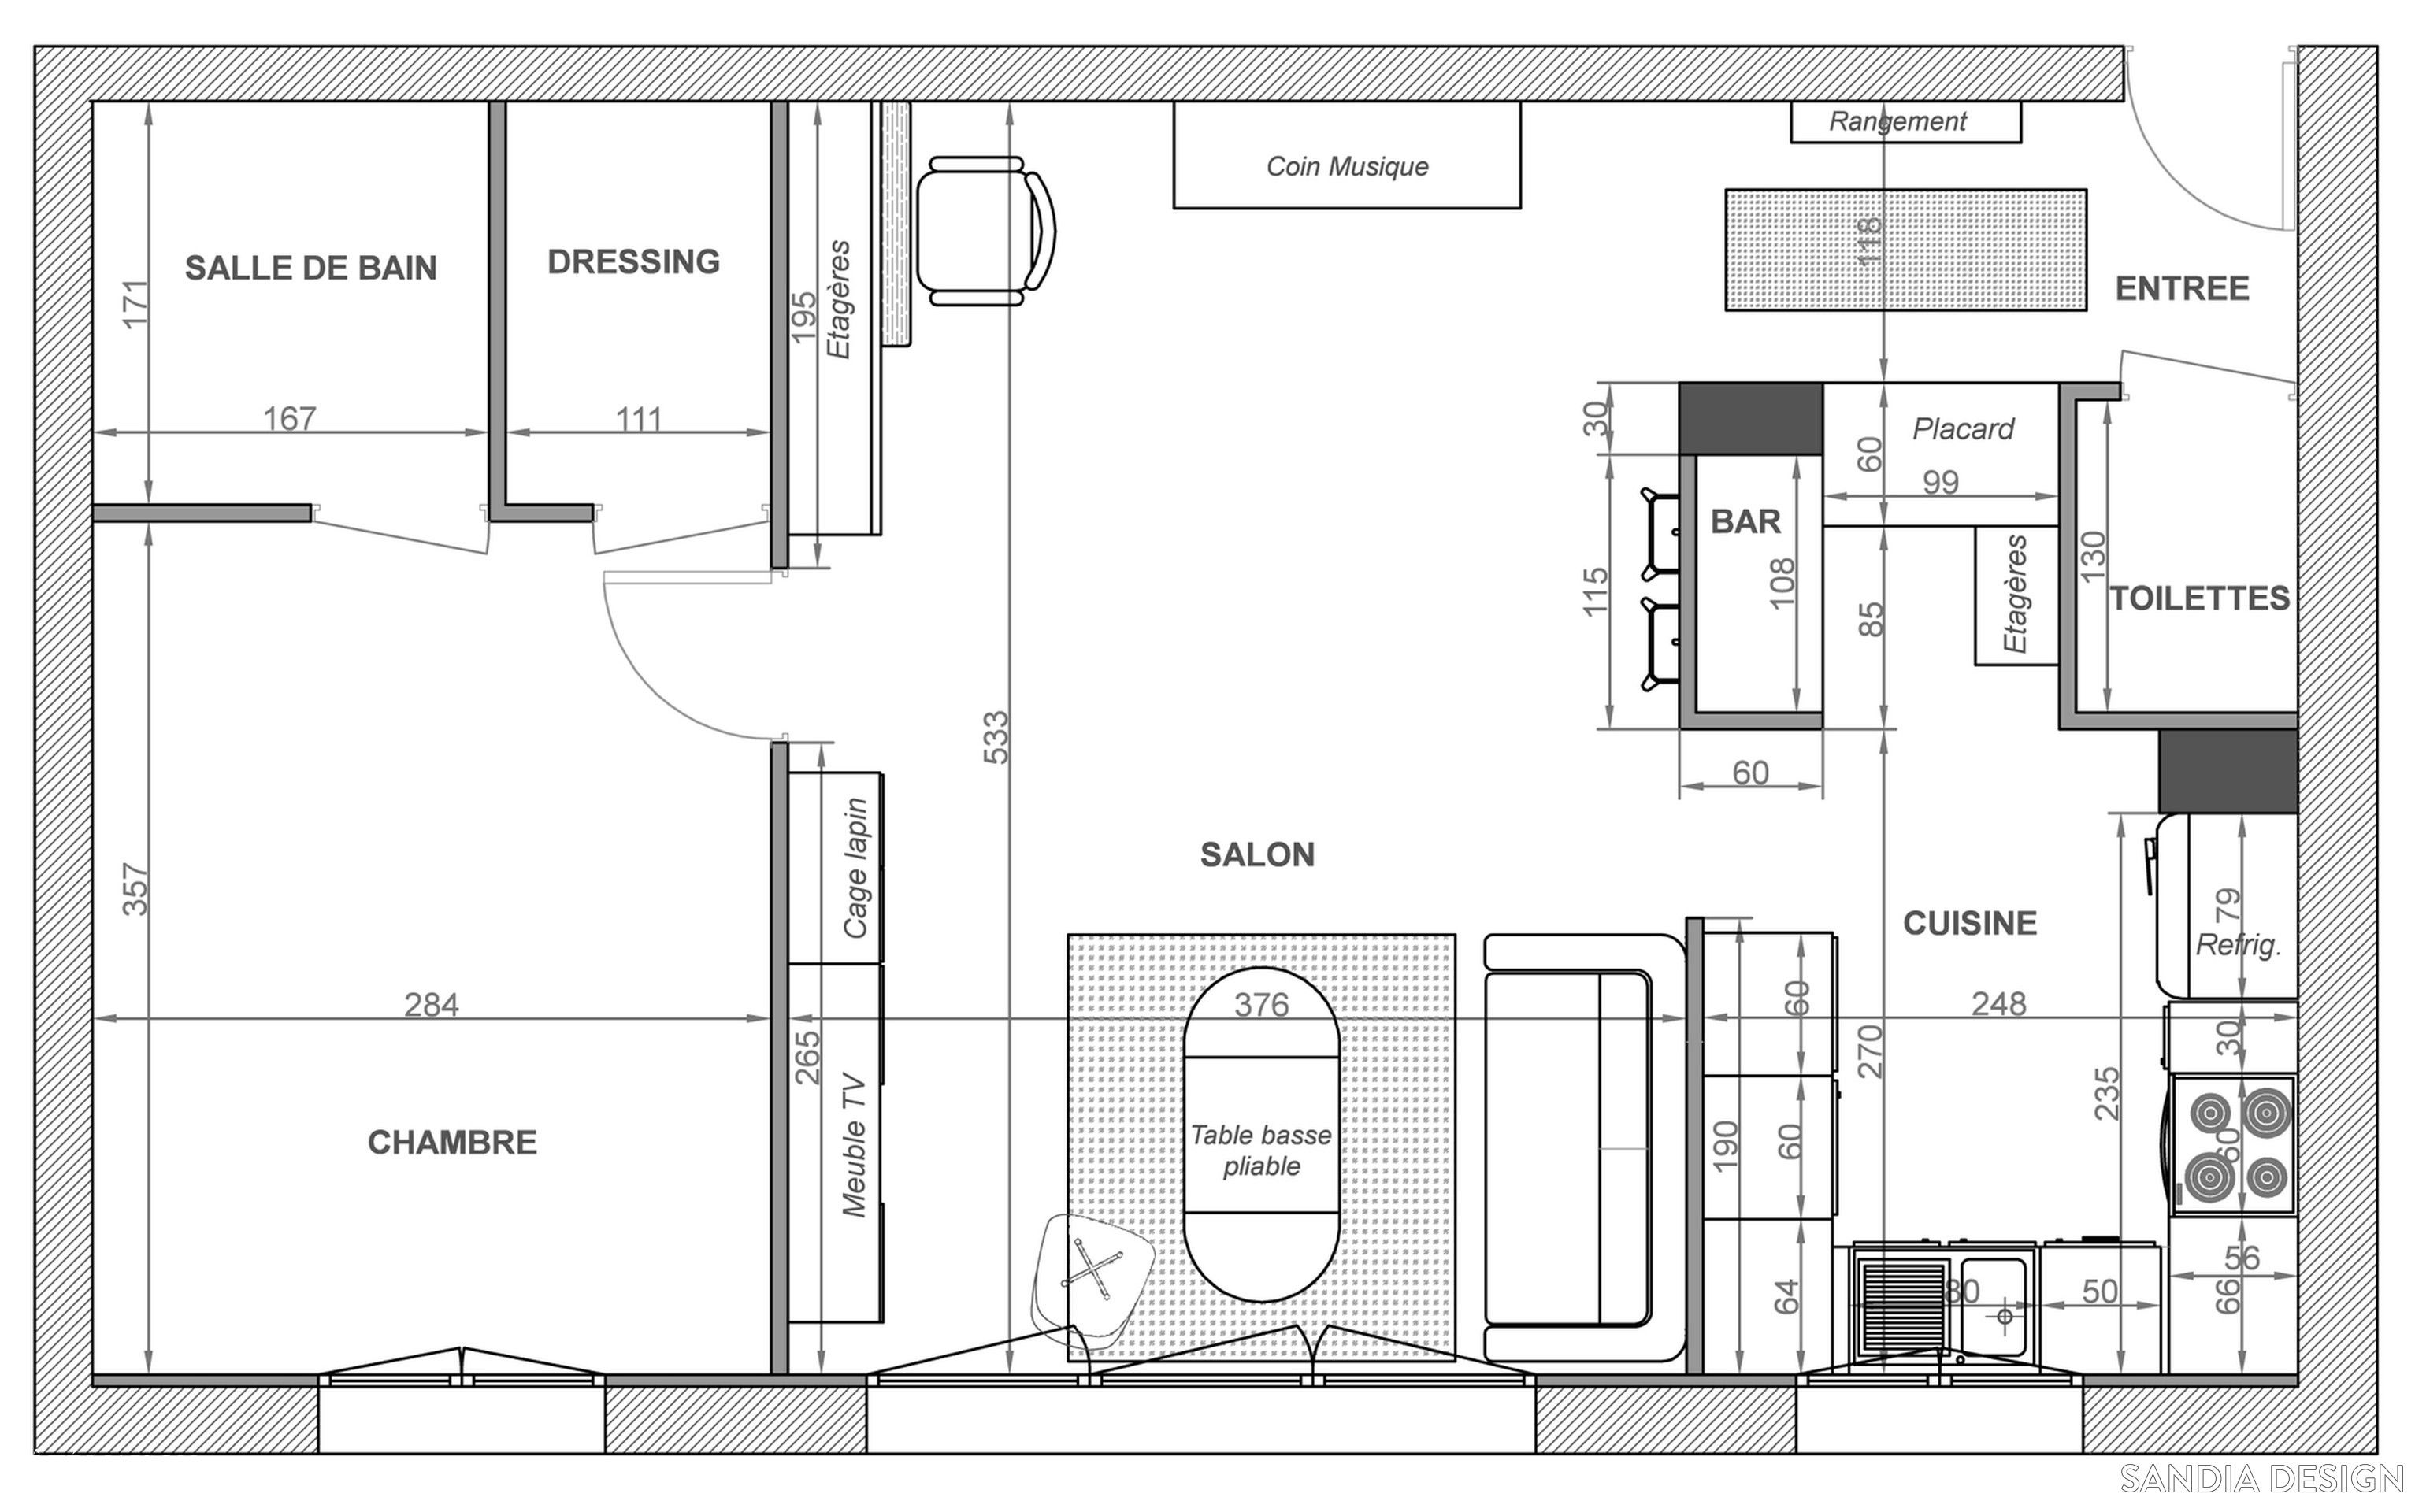 Plan r agencement appartement plans pinterest - Plan maison avec appartement ...